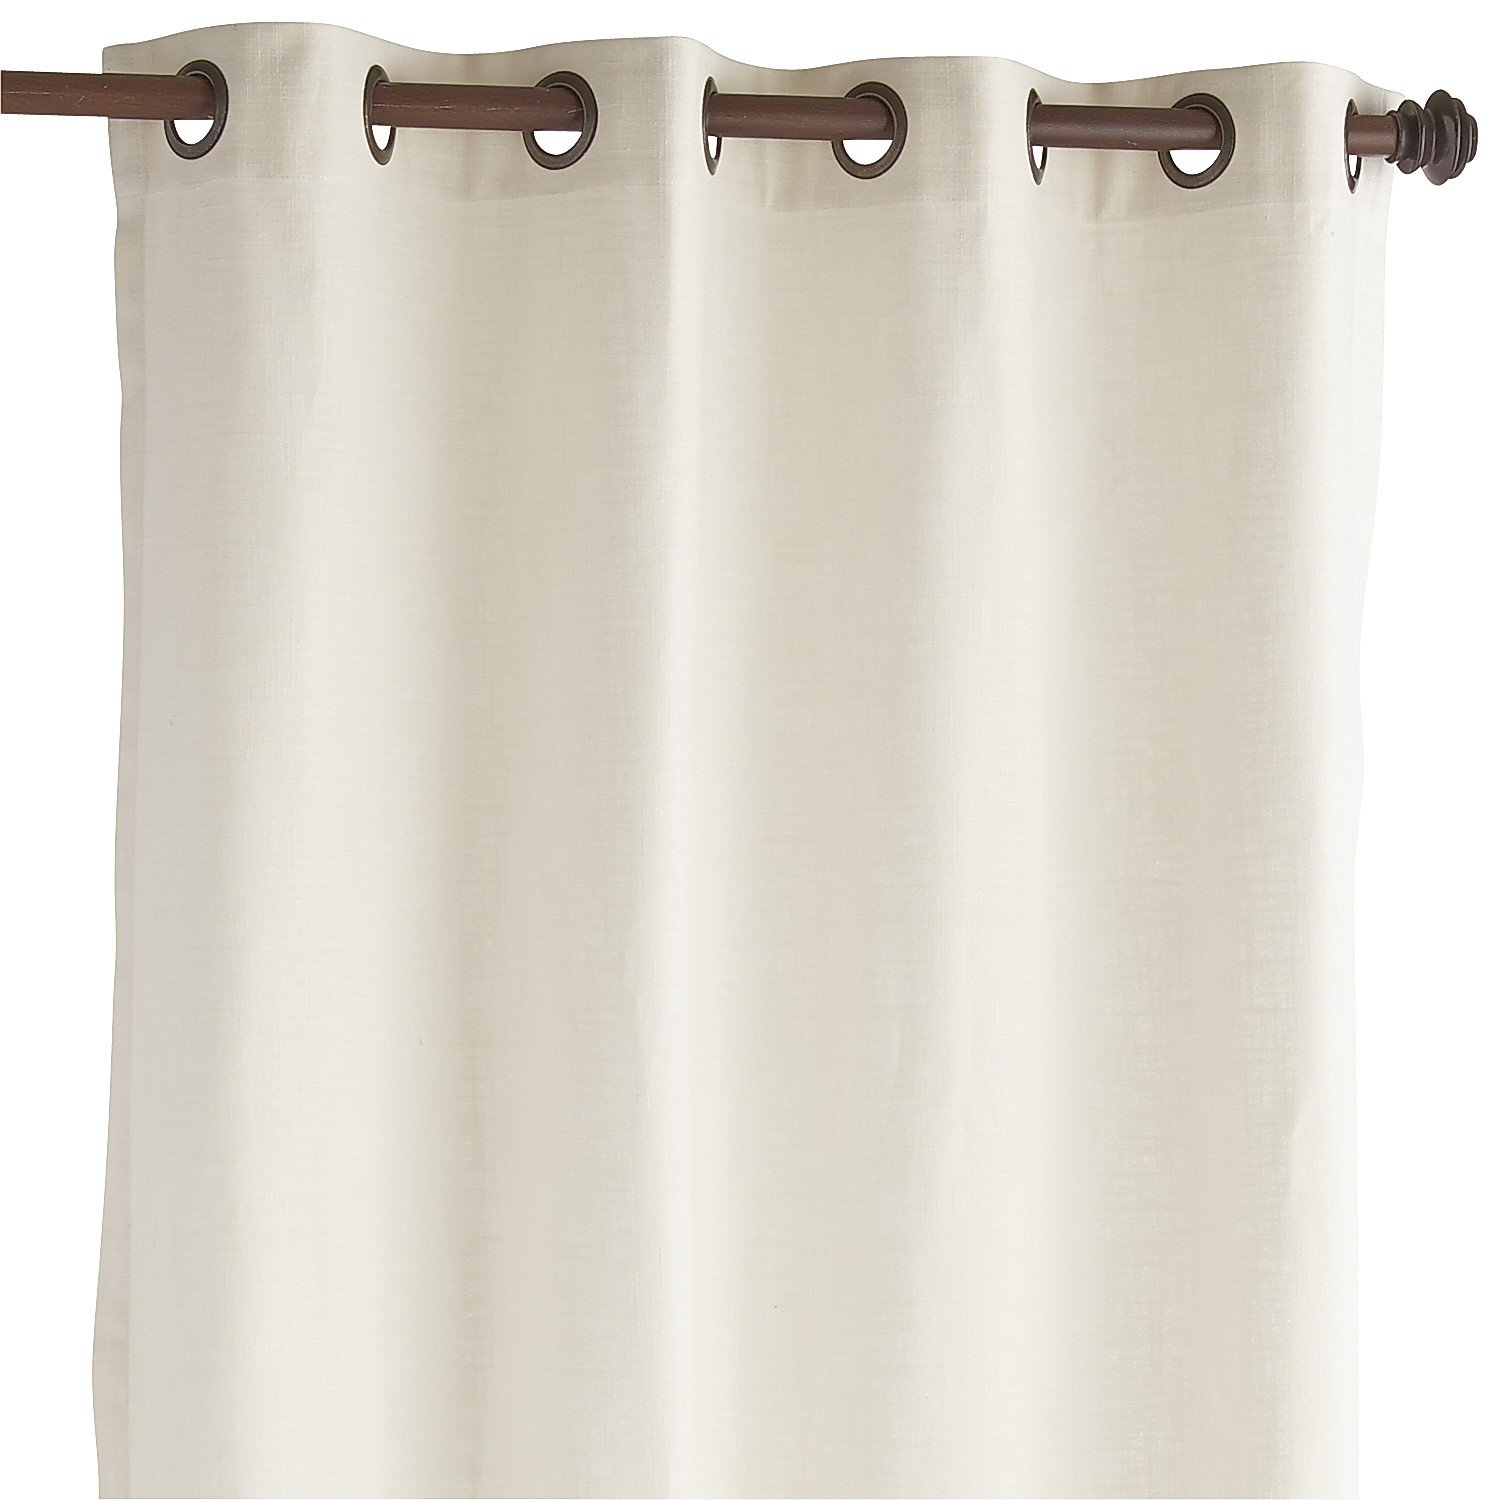 Pier 1 Imports Single Panel Unlined Cotton Curtain Cassidy Chambray Ivory 84'' Grommet Top Curtain Window Treatment